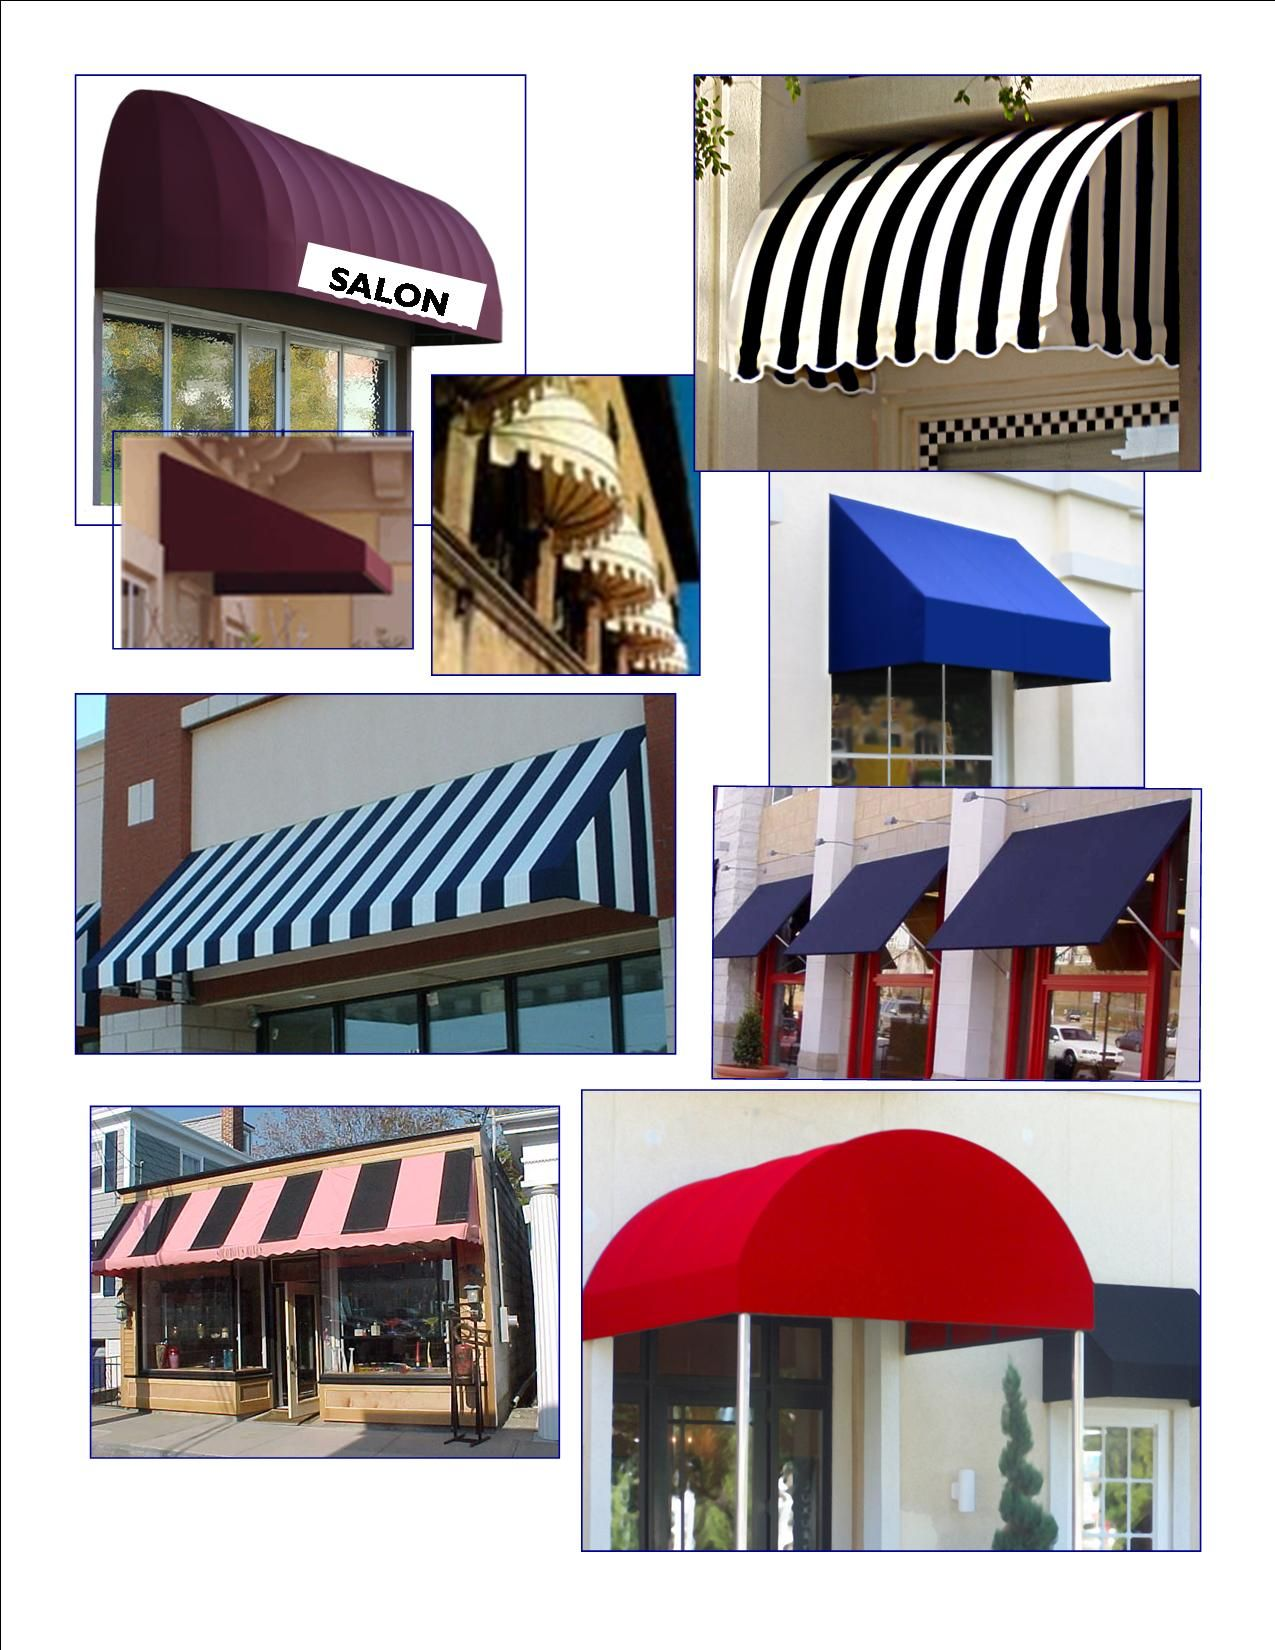 Diy Awnings Retractable Over Doors Ideas Patio Awnings Front Door Awnings For Windows And For D Coffee Shop Design Cafe Interior Design Store Design Boutique